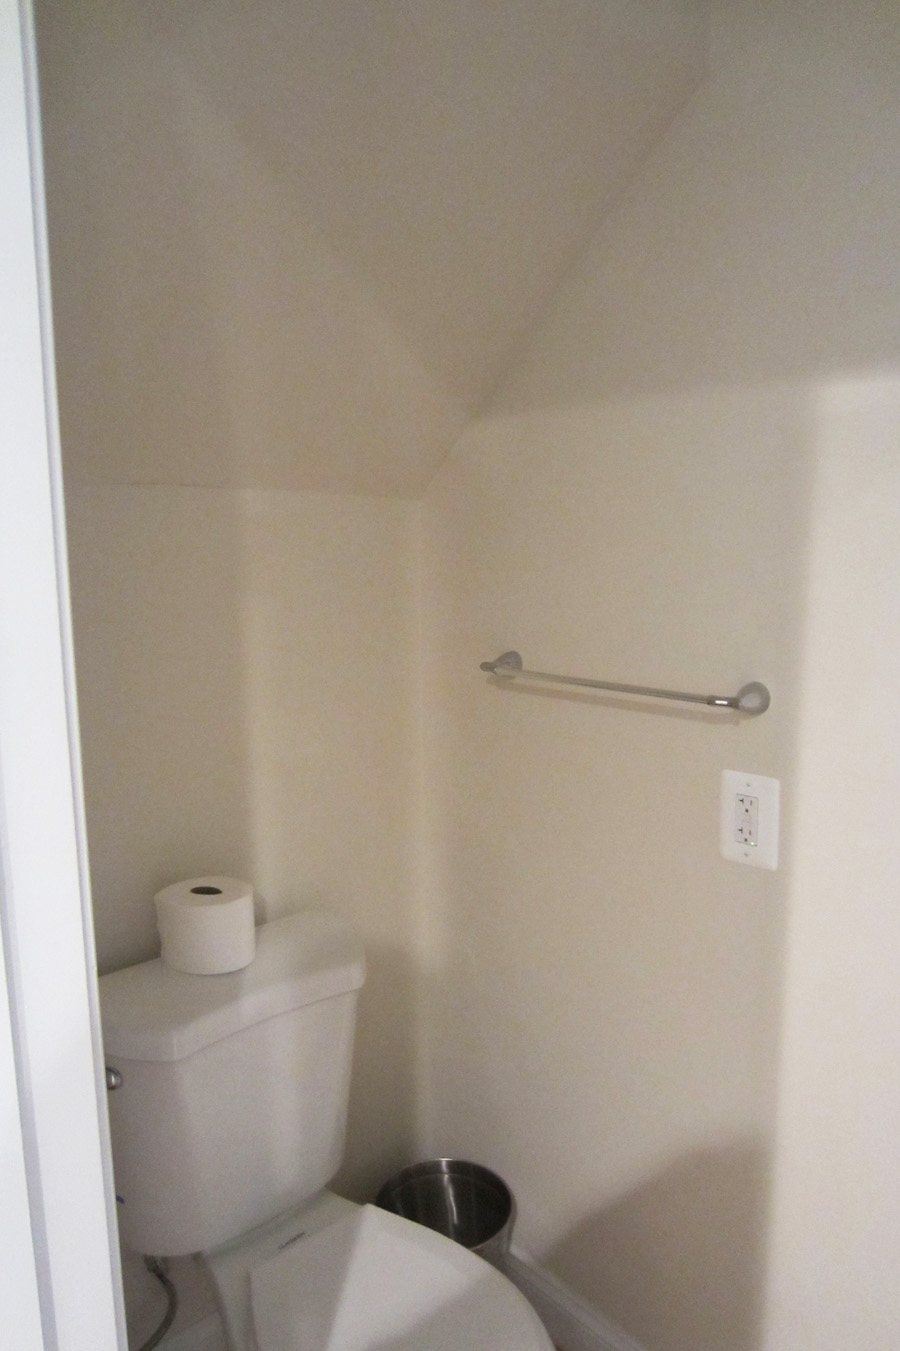 Powder room toilet before